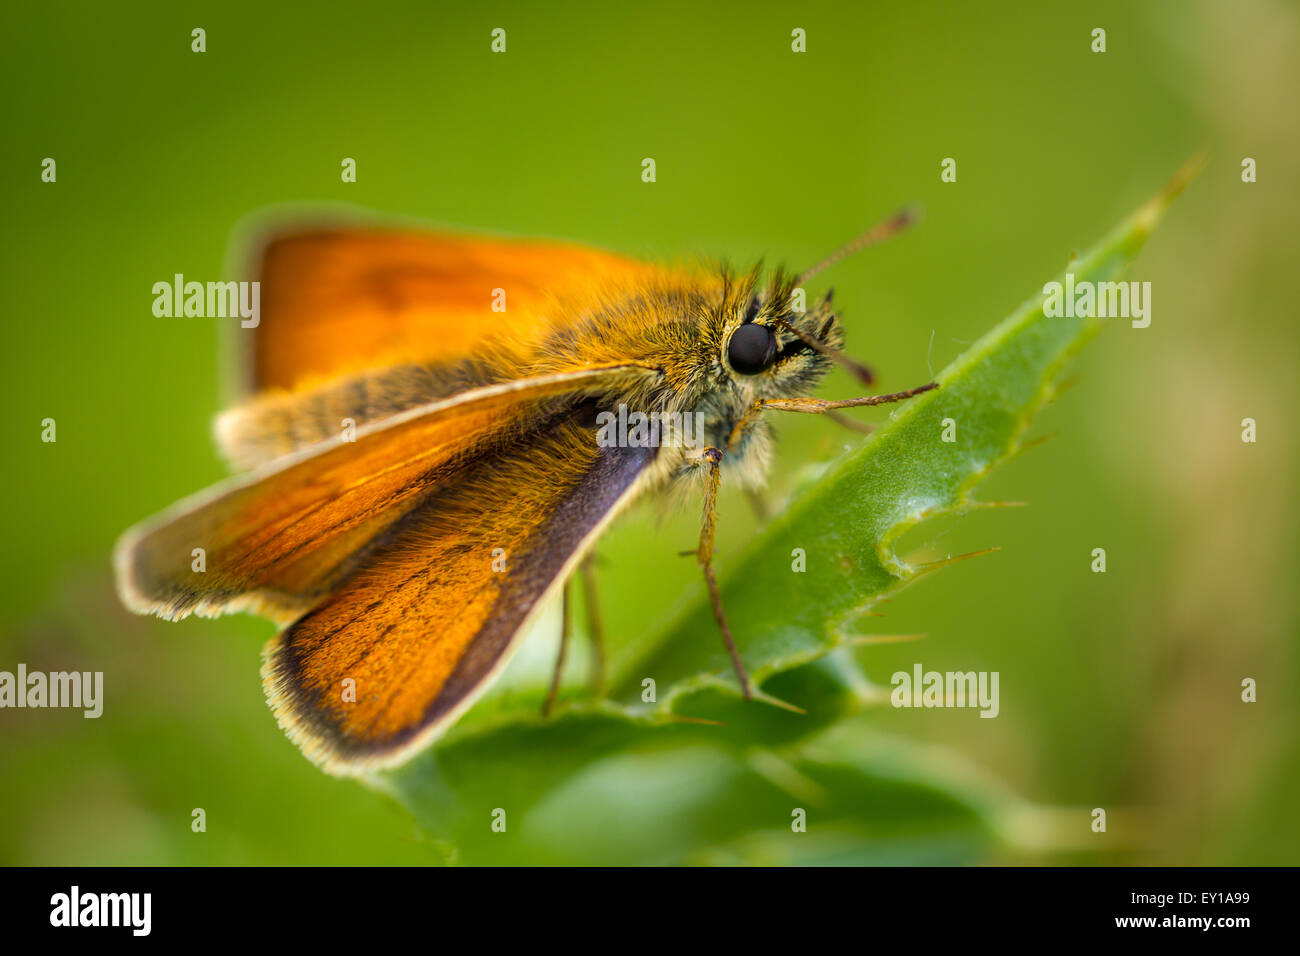 Small skipper butterfly perched on a thistle leaf - Stock Image